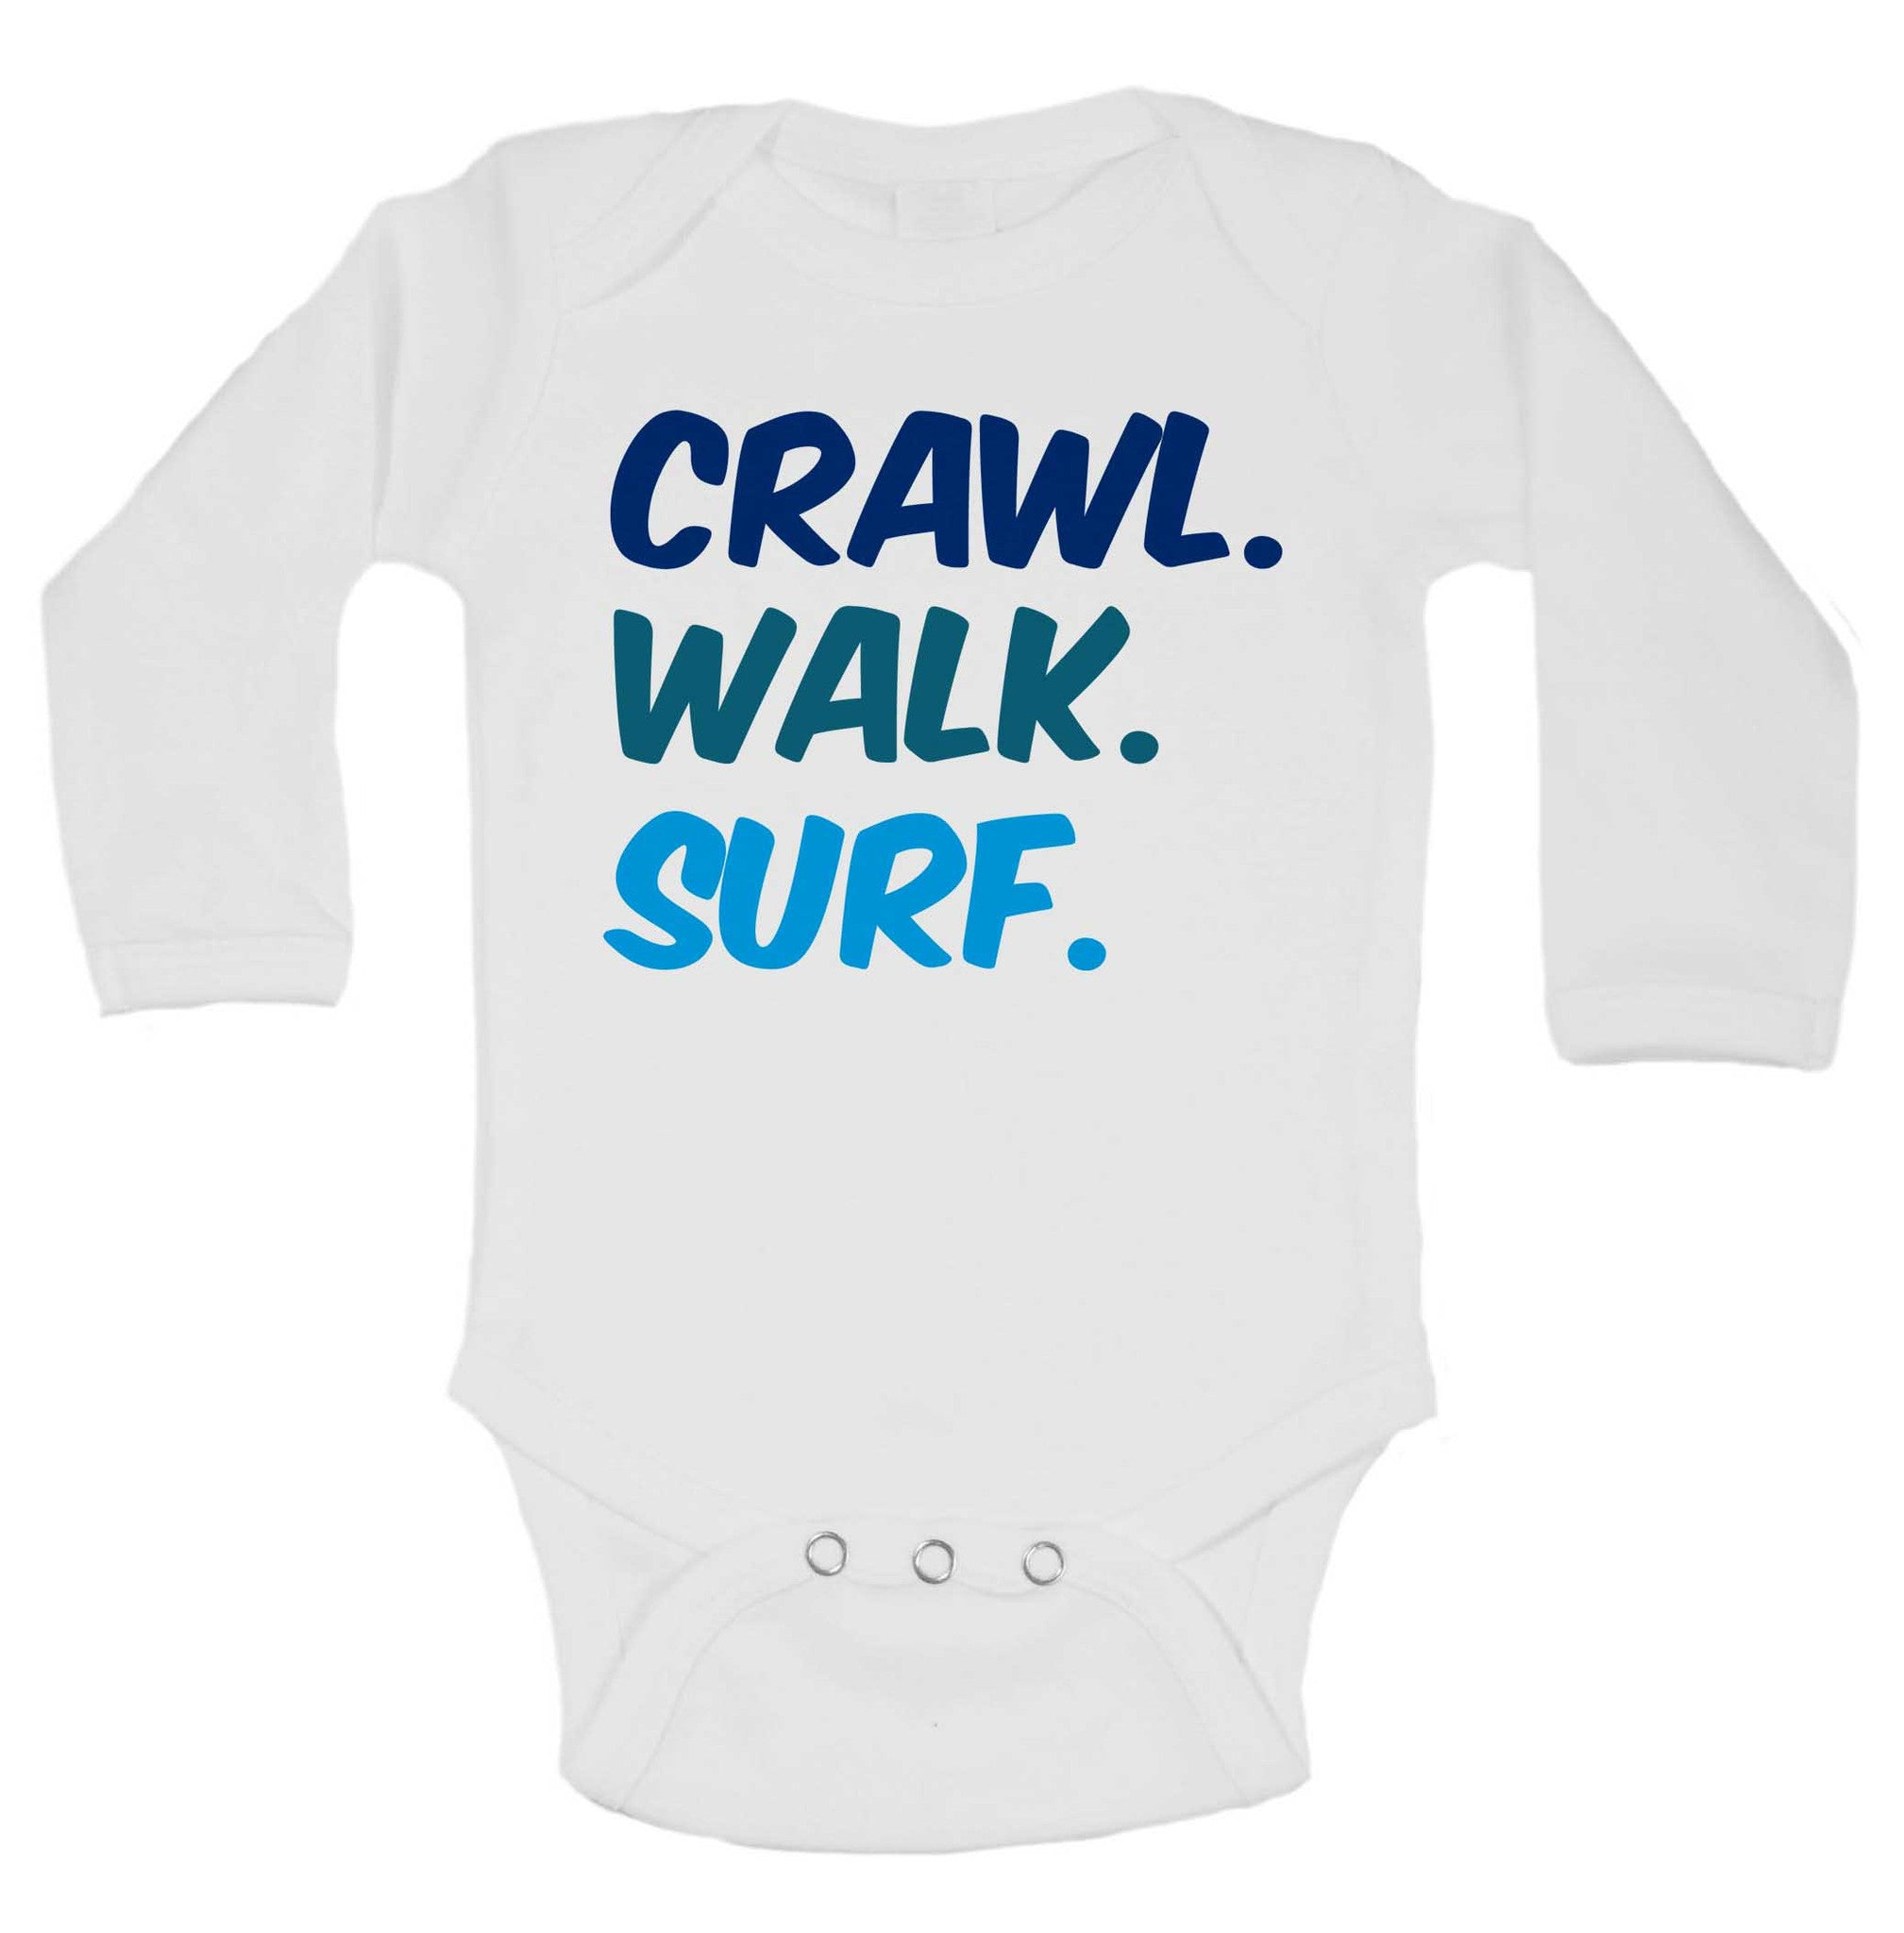 Crawl. Walk. Surf. Funny Kids Onesie - 188 - Funny Shirts Tank Tops Burnouts and Triblends  - 1